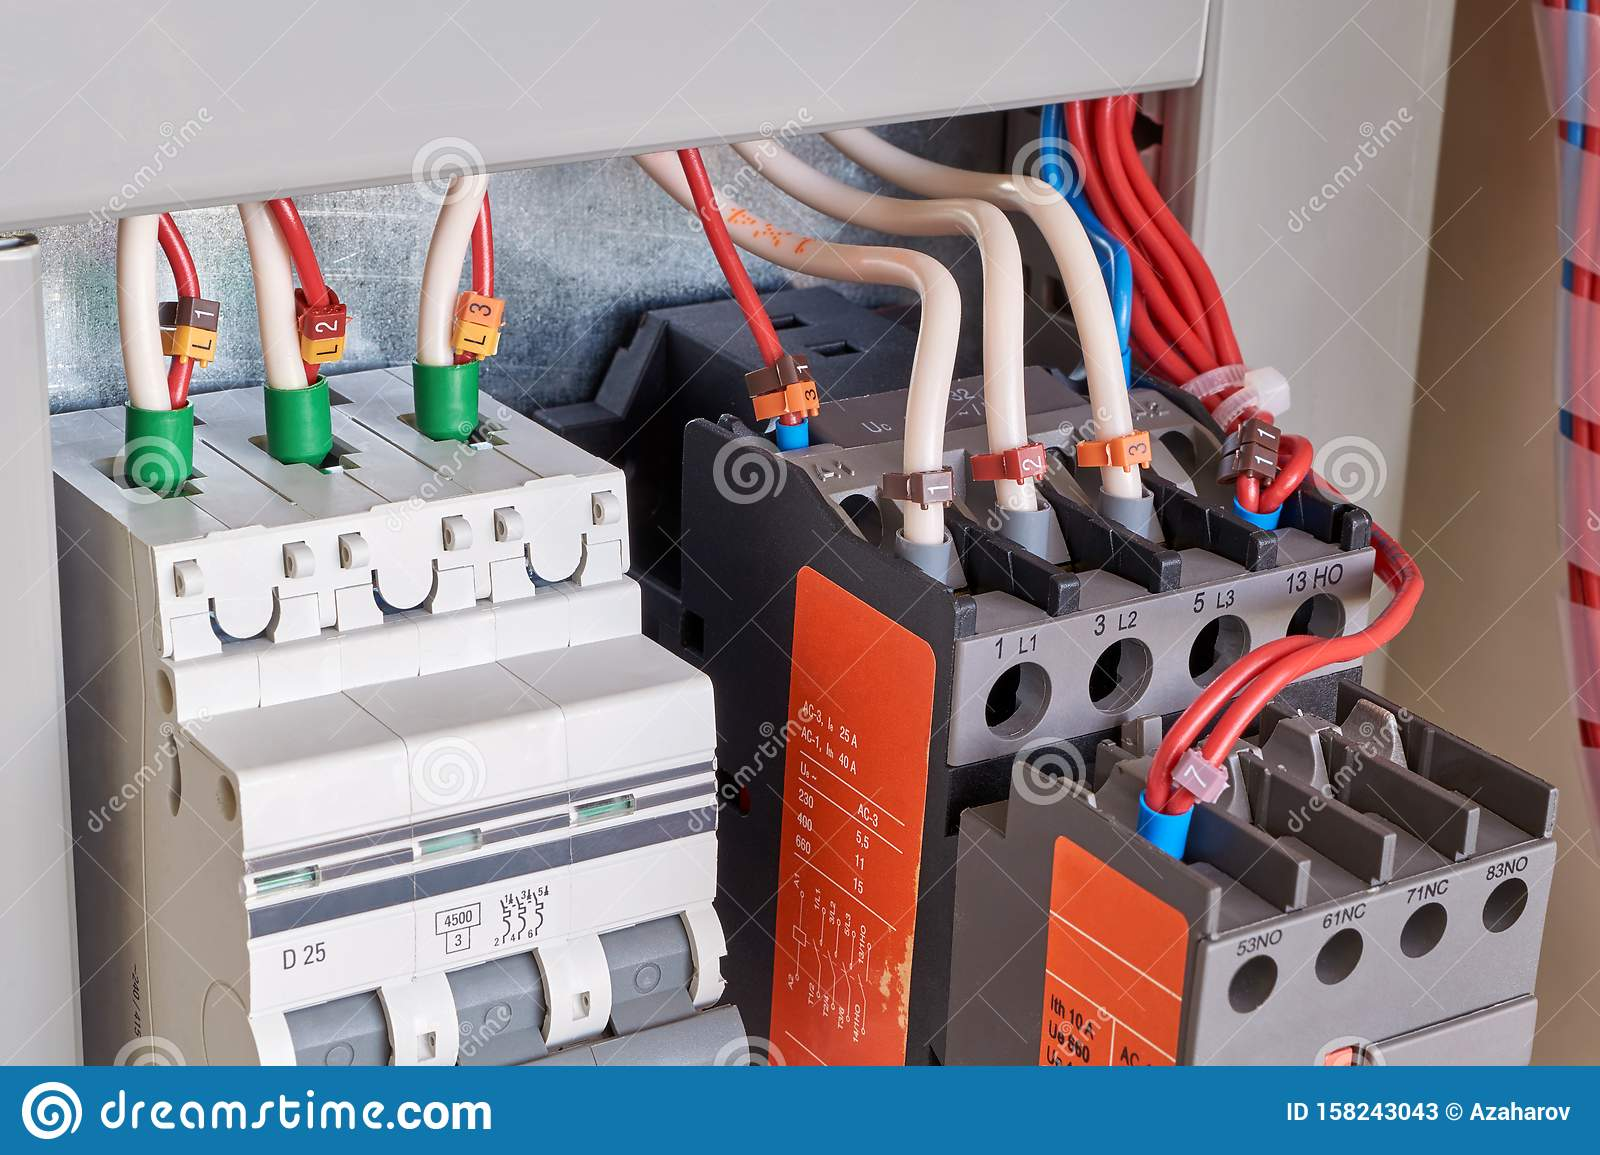 Connection Of Electrical Wires To The Circuit Breaker And ... on motor capacitor wiring, 3 phase ac motor wiring, motor overload wiring, interlock 480v motor wiring, stepper motor wiring, motor lead wiring, motor control wiring, starter wiring, motor plate wiring,